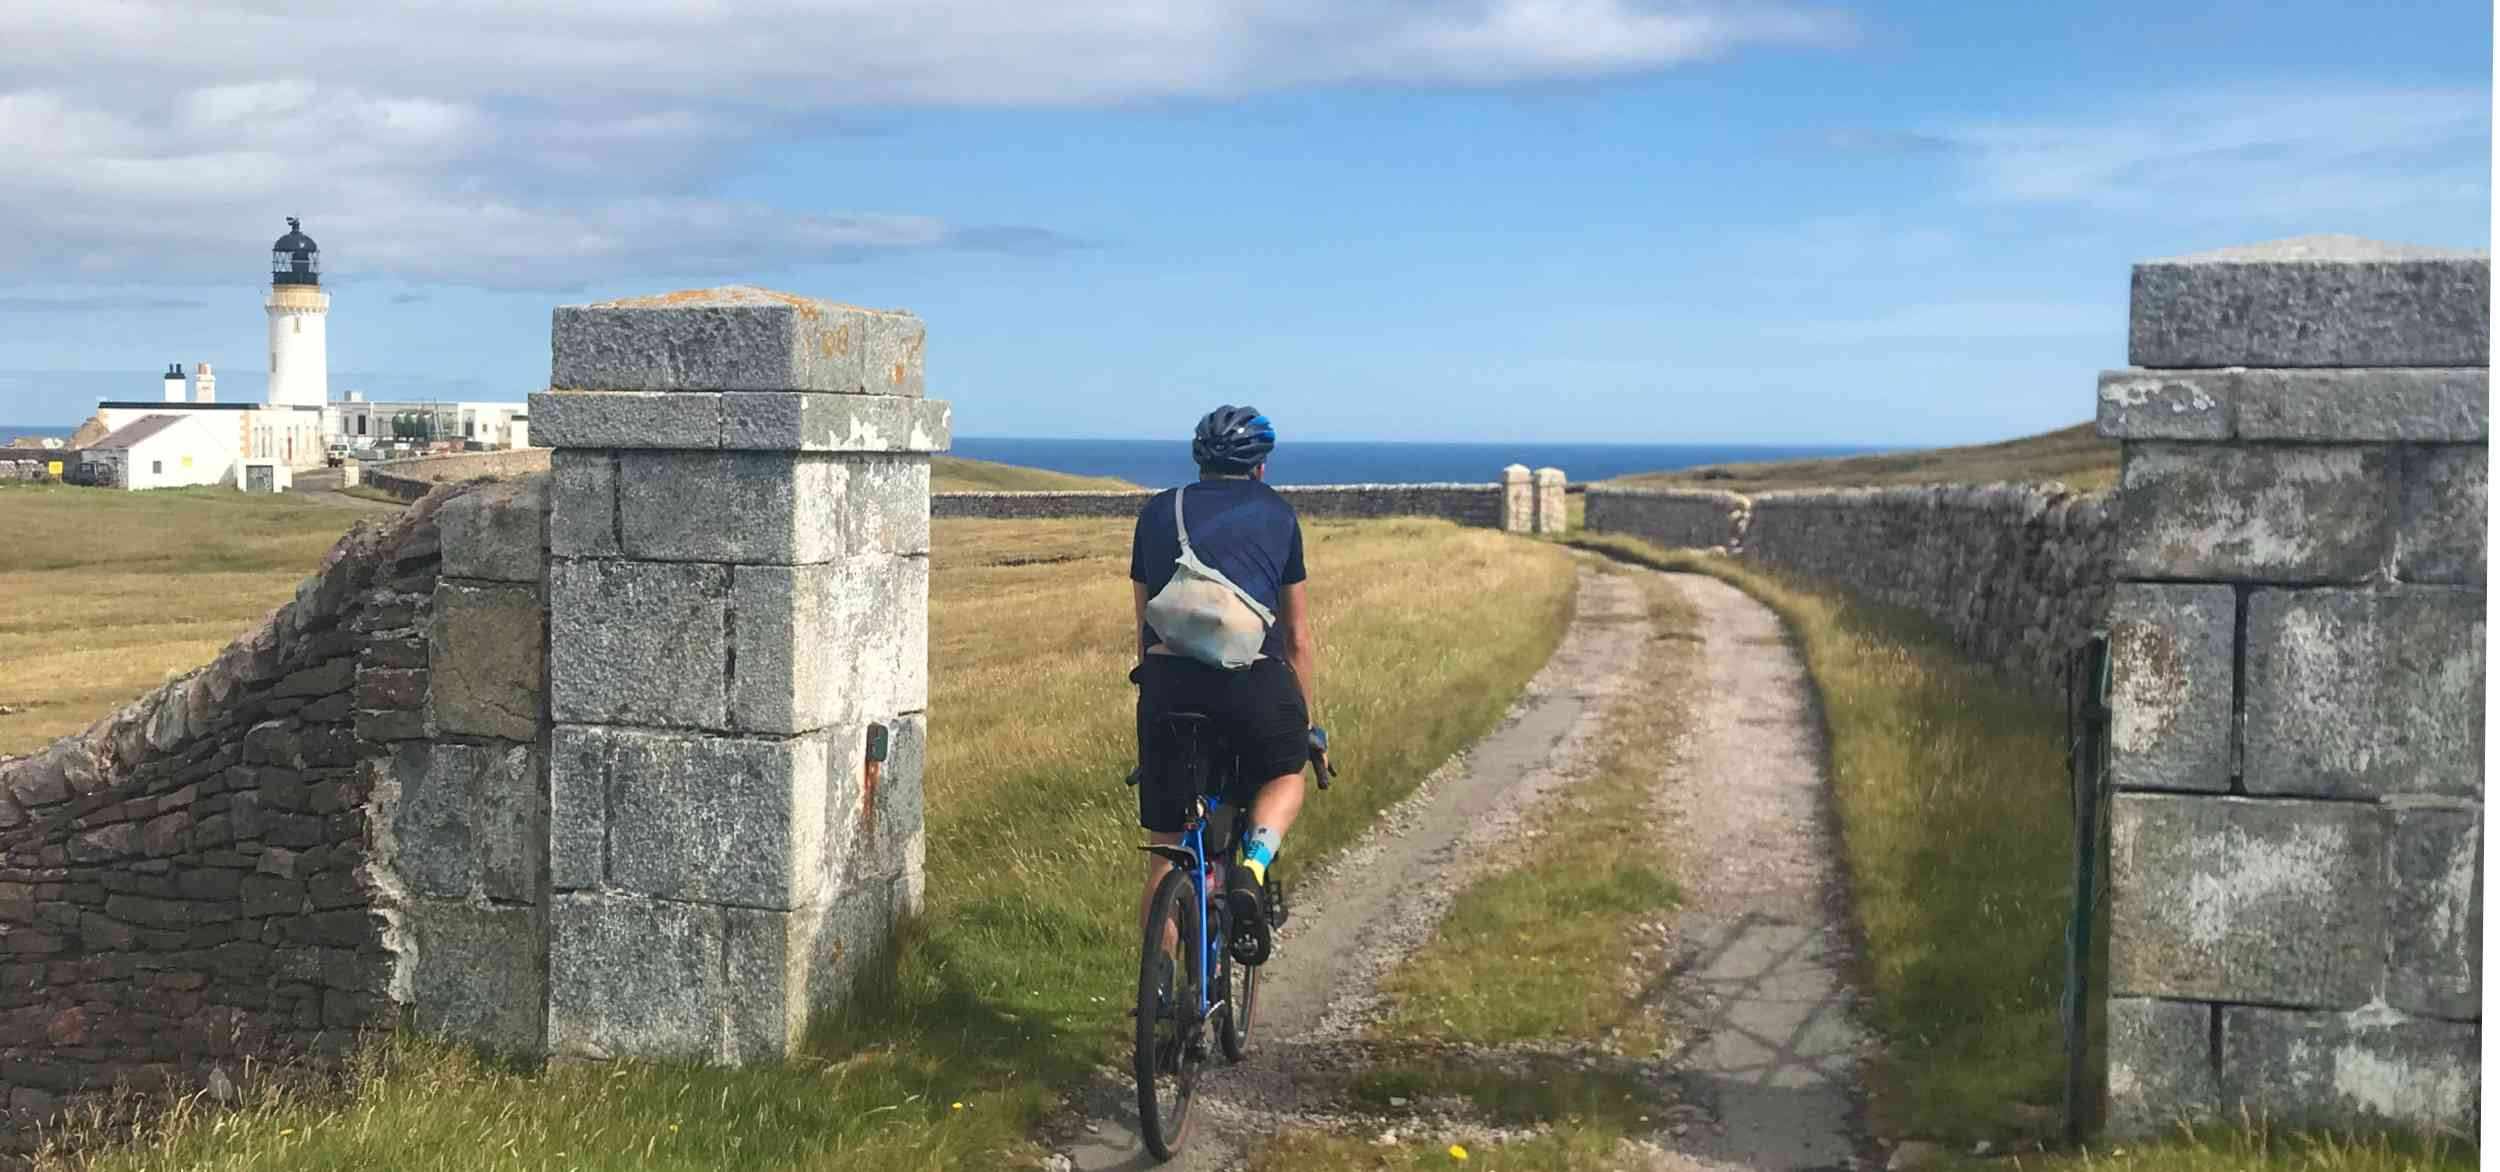 Chris riding his gravel bike to the lighthouse at Cape Wrath